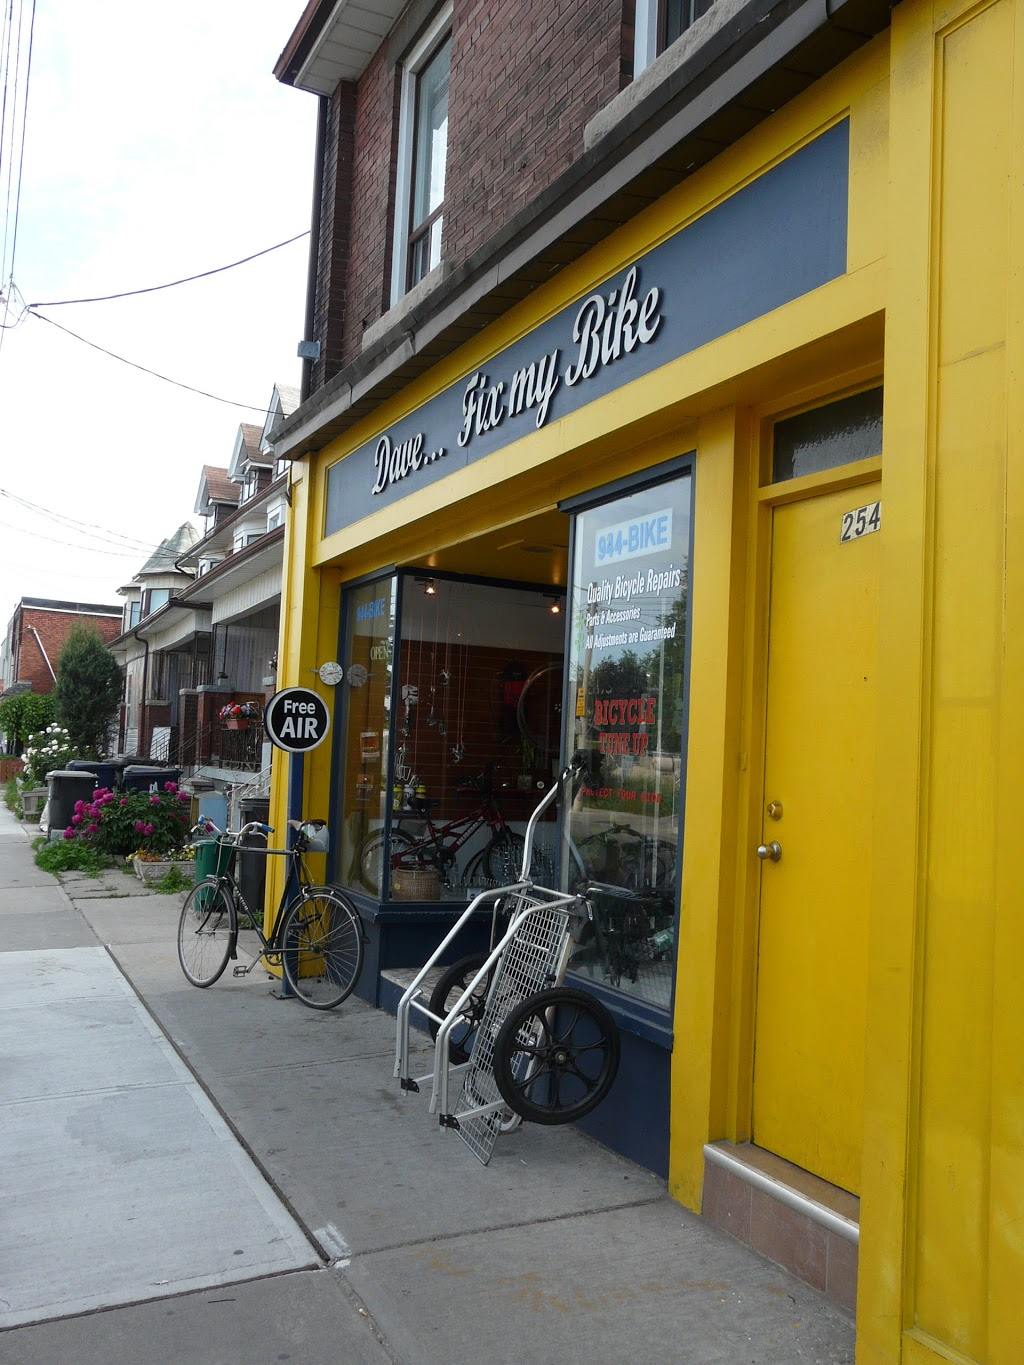 Dave... fix my bike | bicycle store | 254 Christie St, Toronto, ON M6G 3B8, Canada | 4169442453 OR +1 416-944-2453